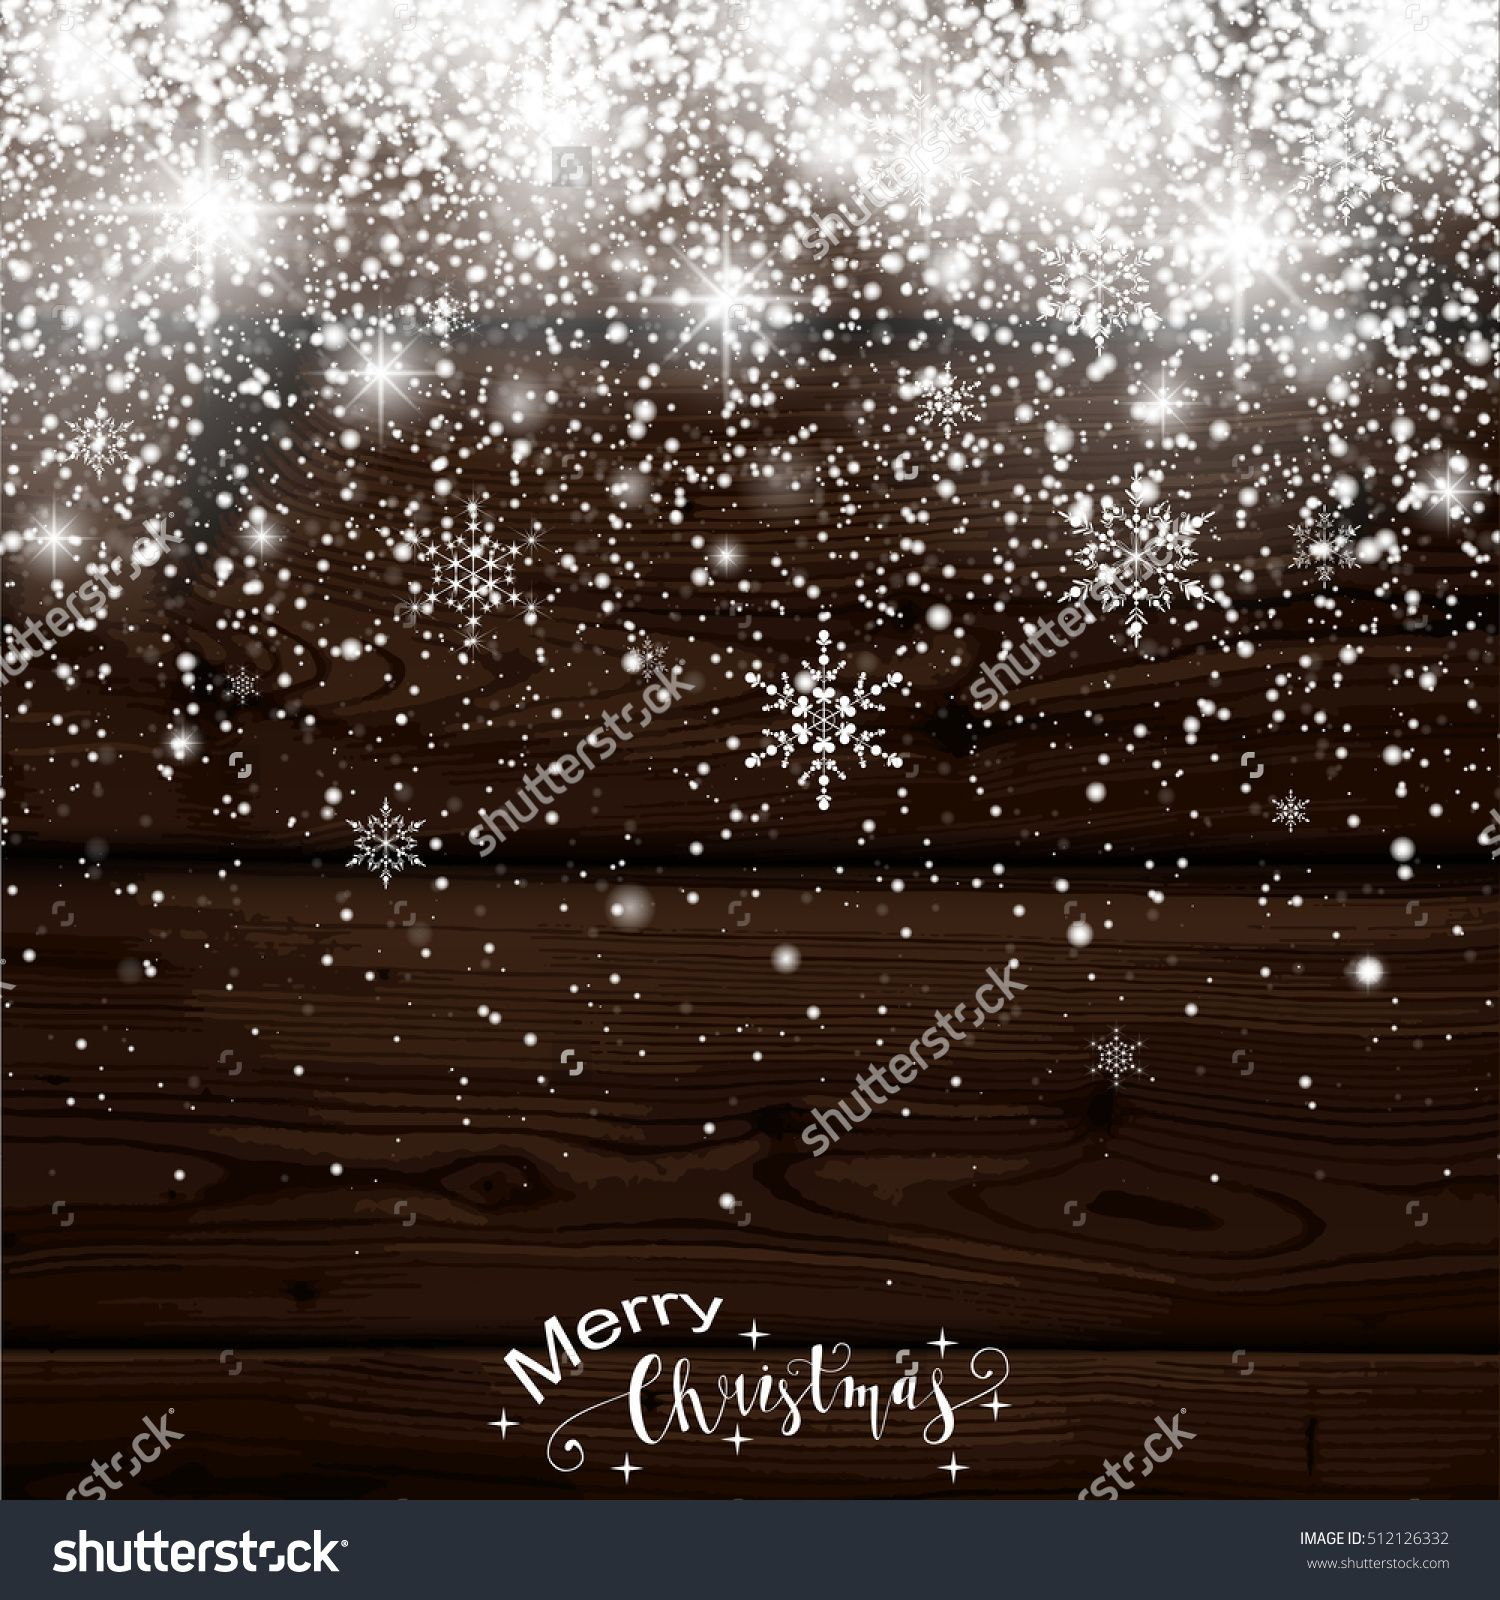 Christmas Snowfall. Falling Christmas sparkling transparent beautiful snow isolated on wooden background Lettering Merry Christmas. Snowflakes. Vector illustration